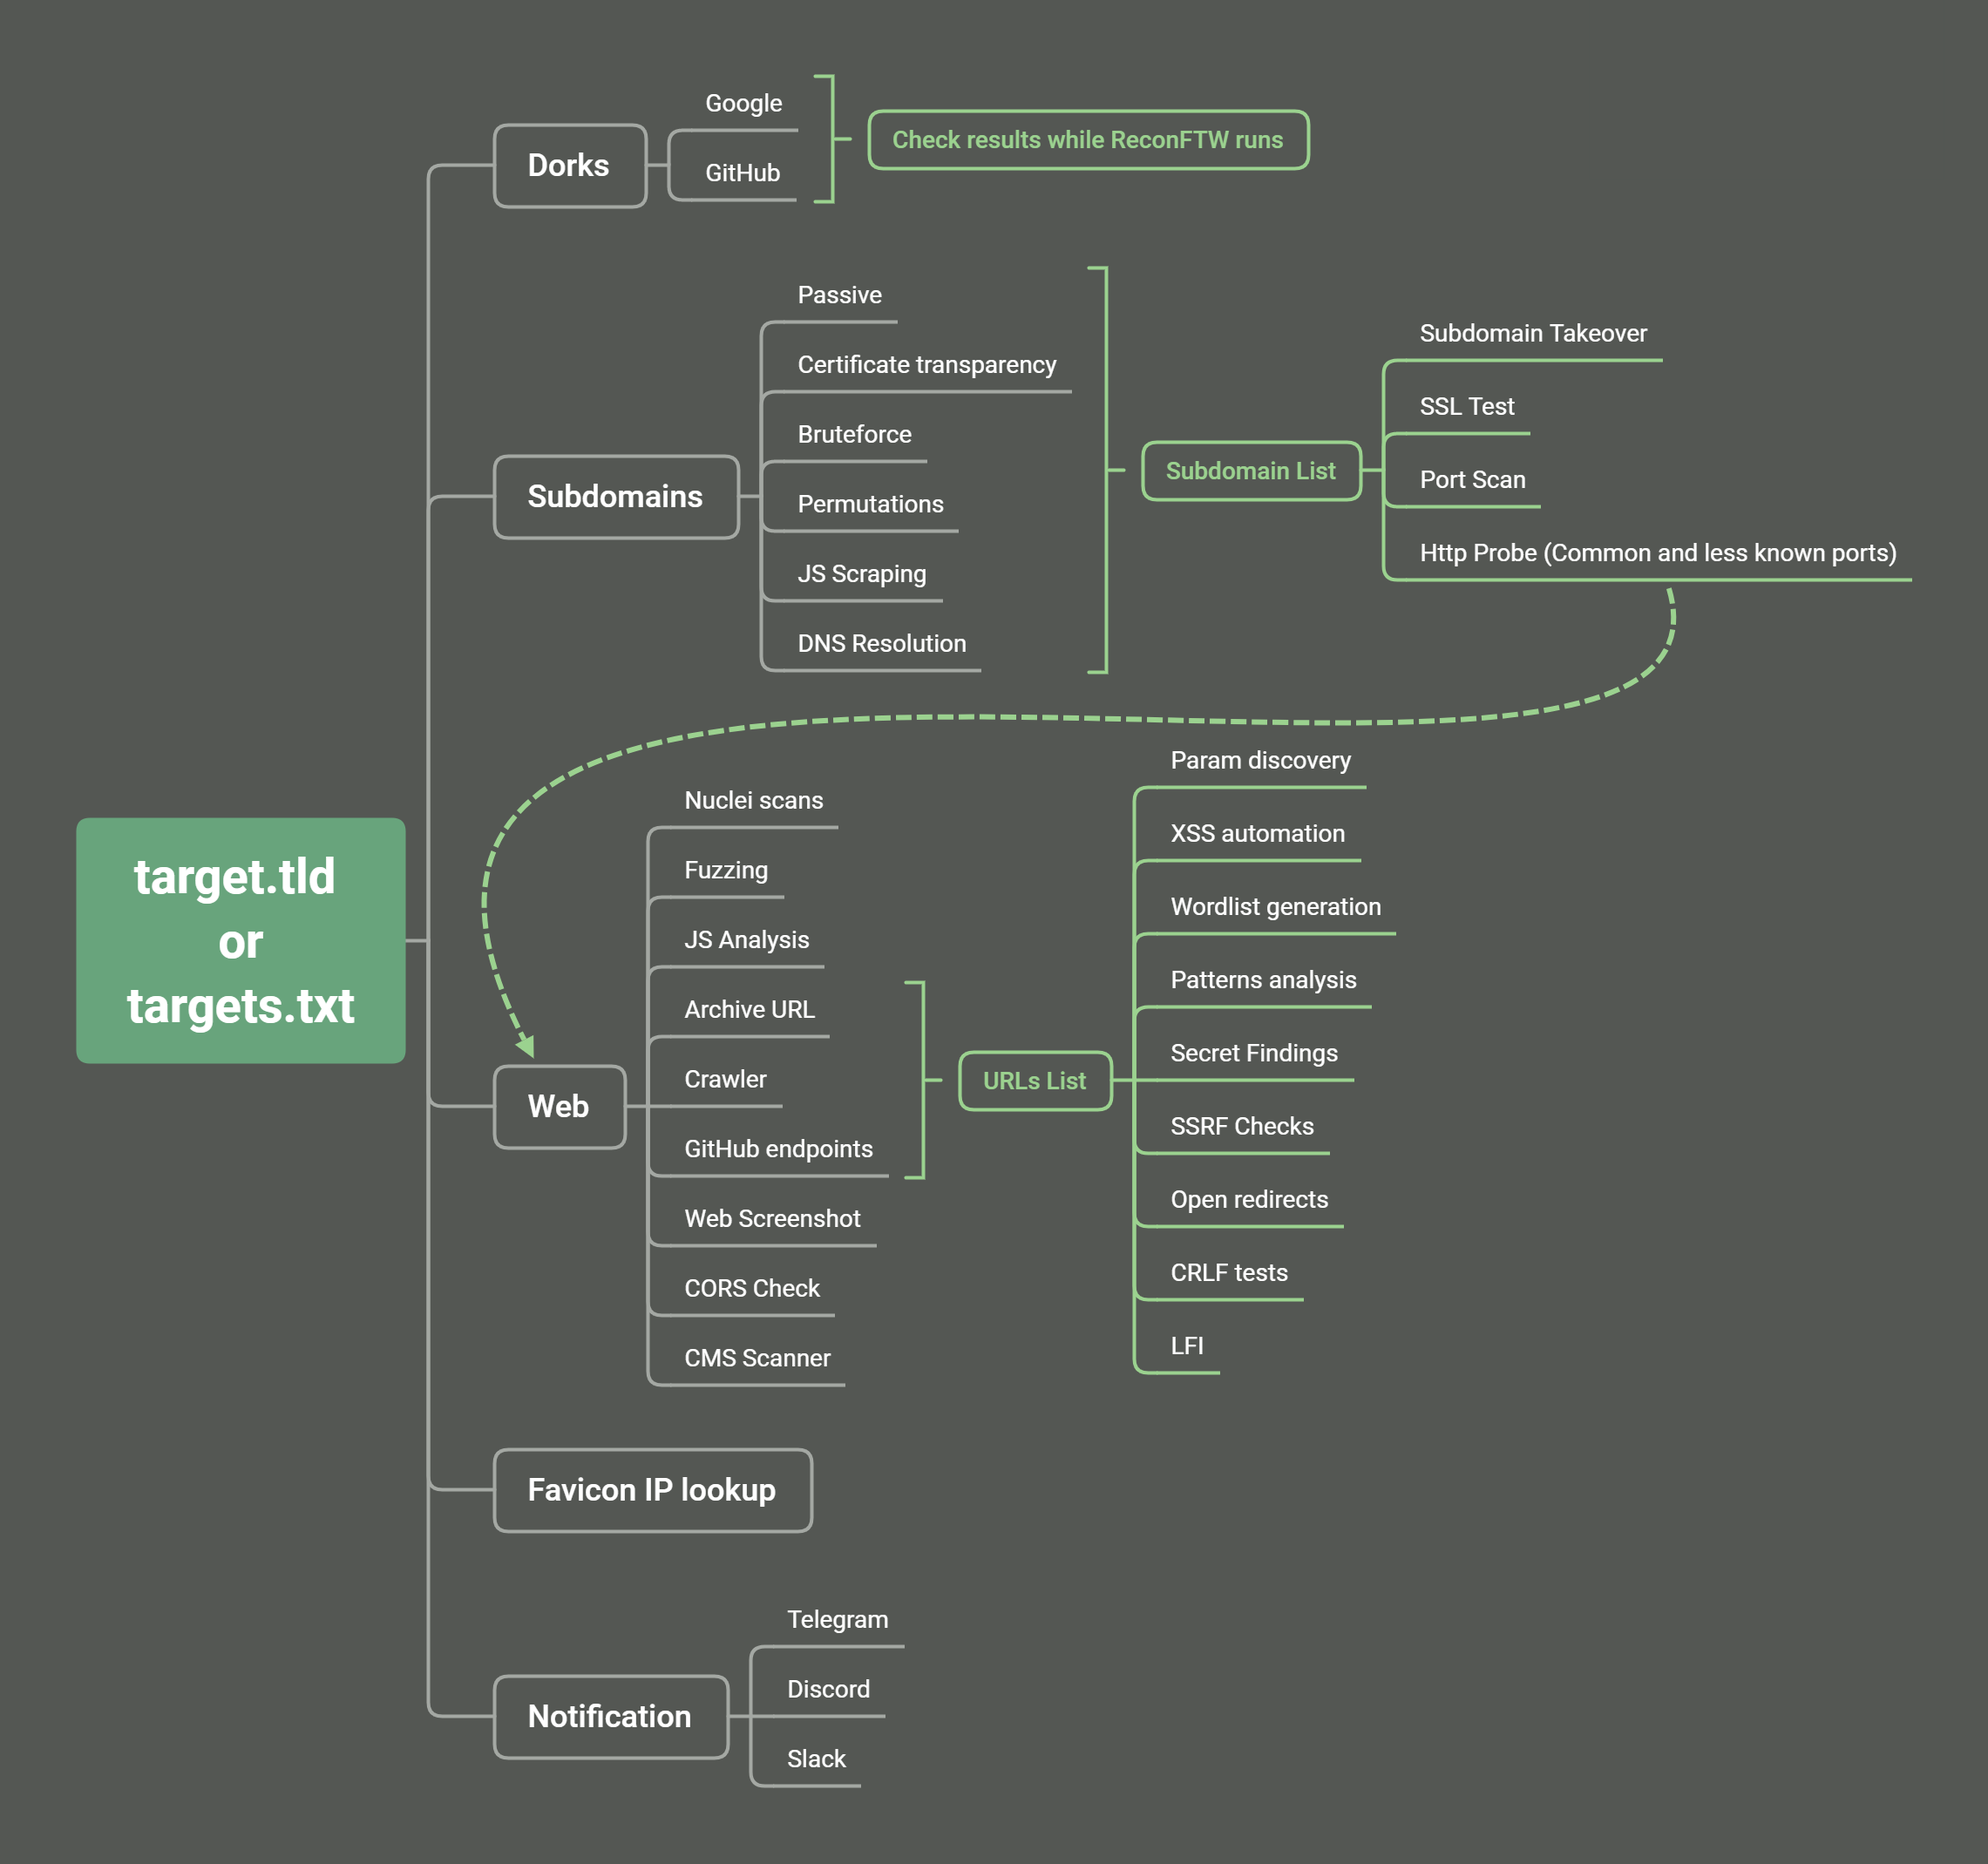 mindmap - reconftw: Automated recon of a target